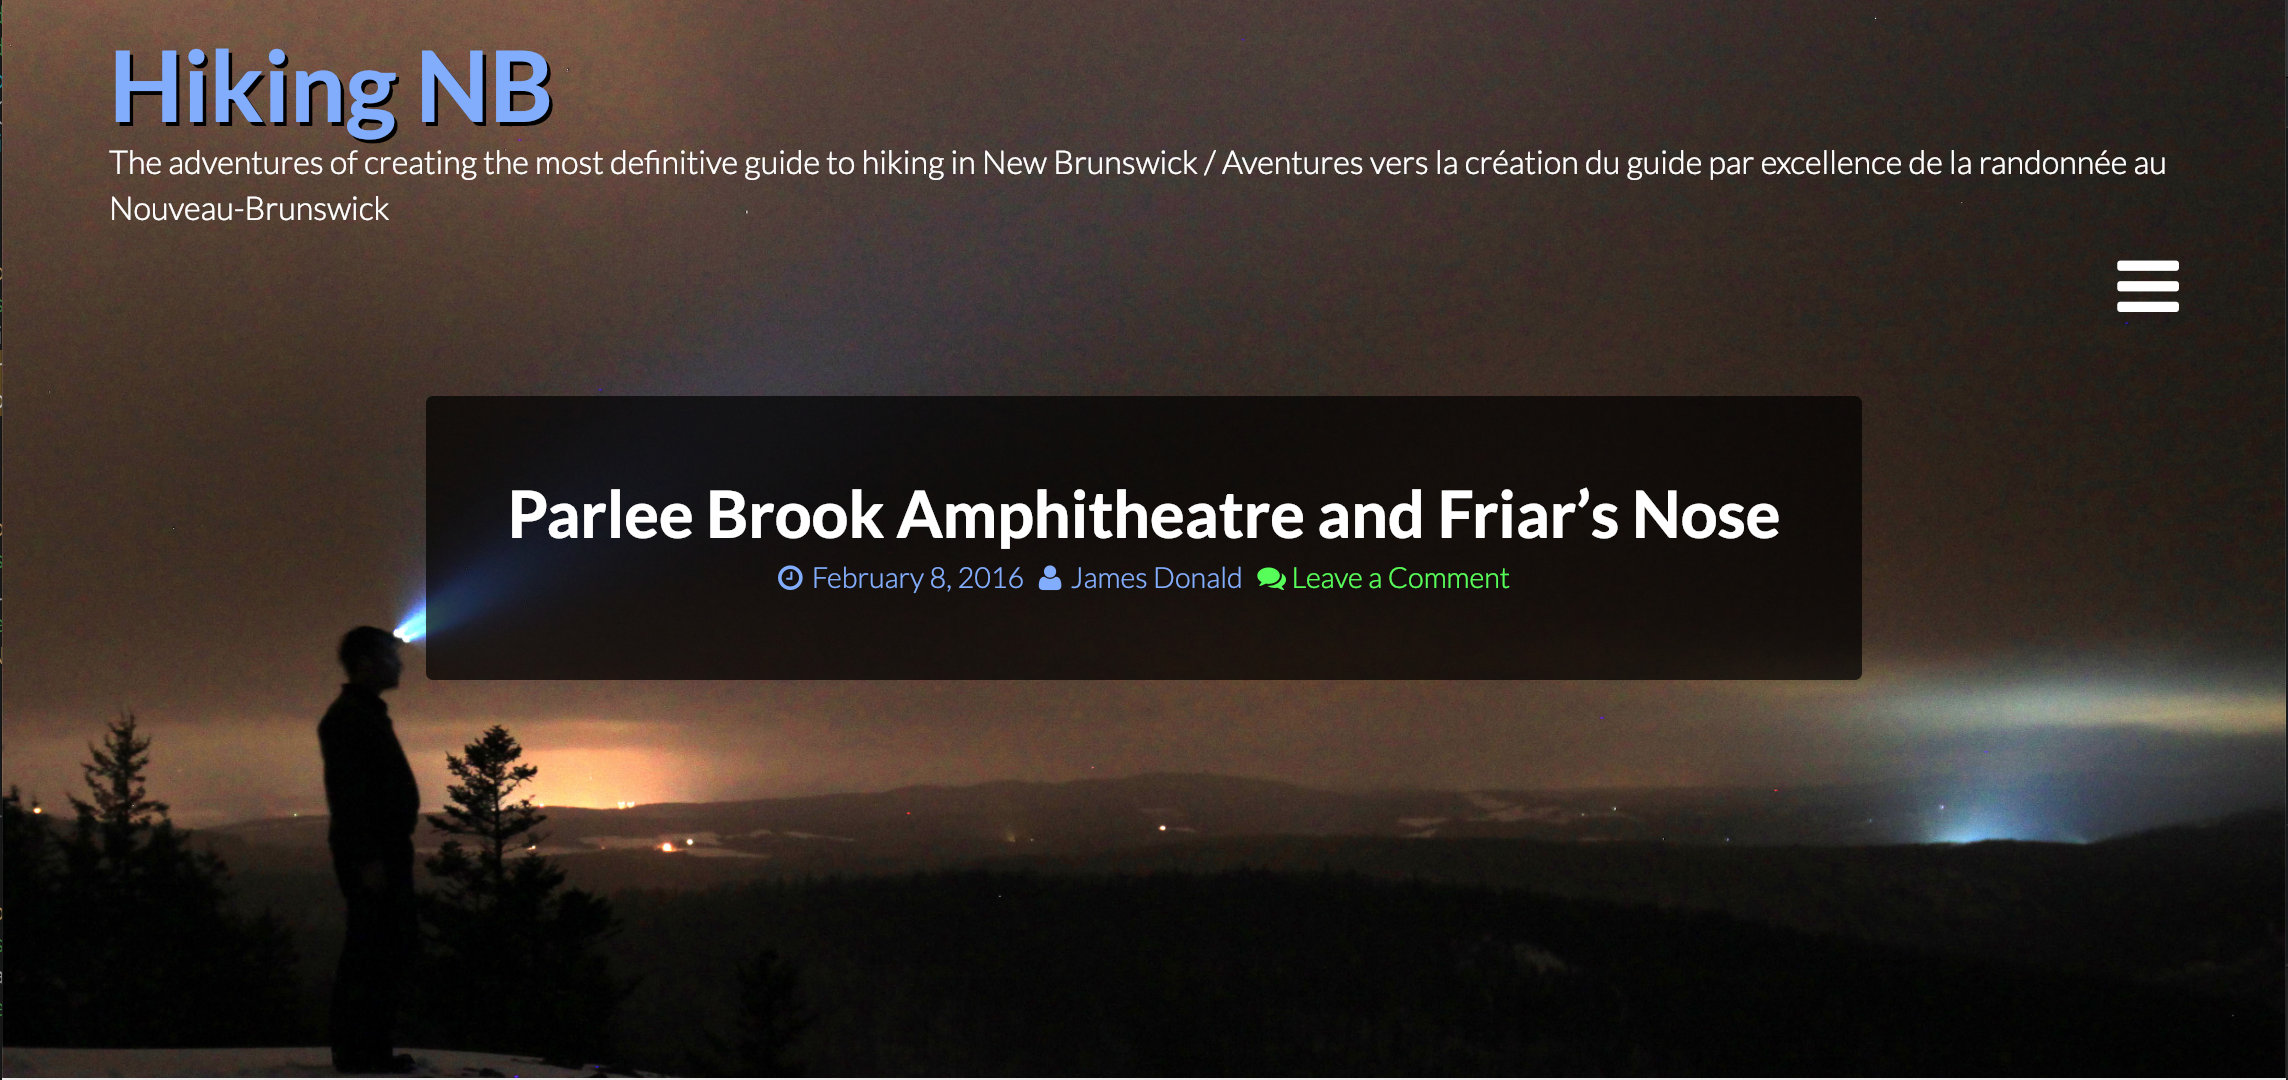 Friars Nose and Parlee Brook Amphitheatre Blog Post